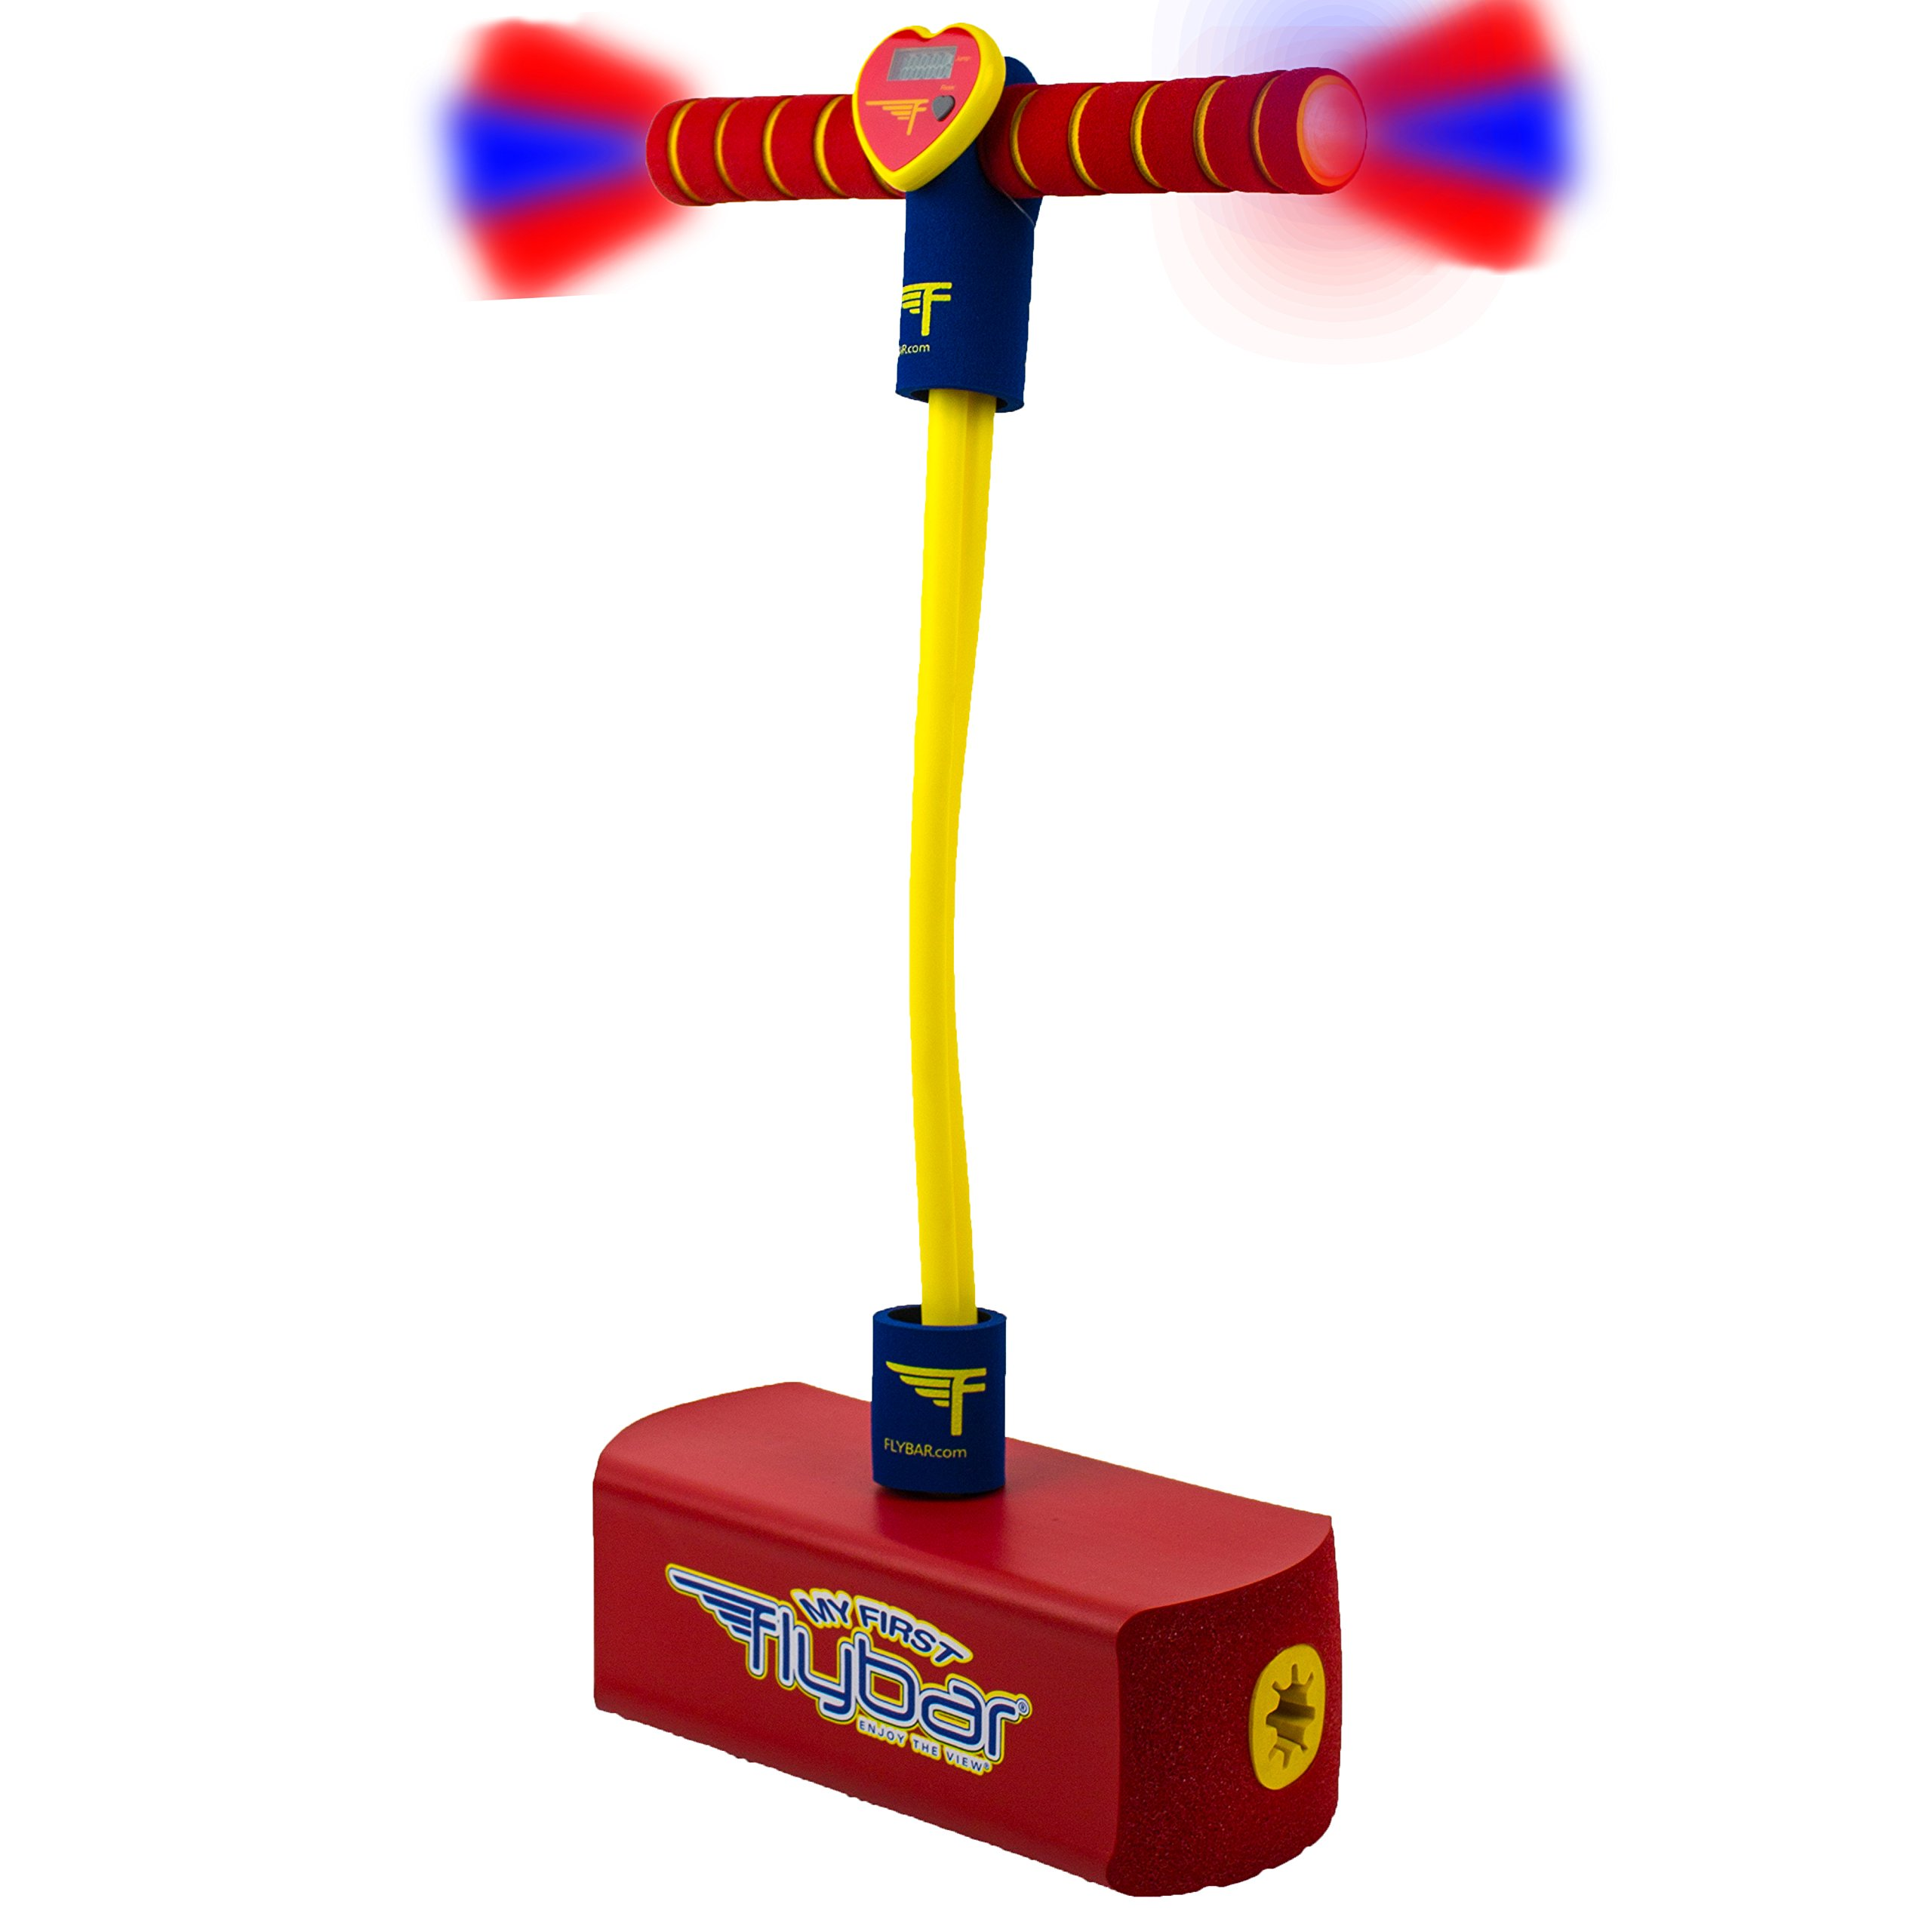 Flybar My First Foam Pogo Jumper with Flashing LED Lights & Pogo Counter Safe Pogo Hopper for Kids Ages 3 & Up (Red LED) by Flybar